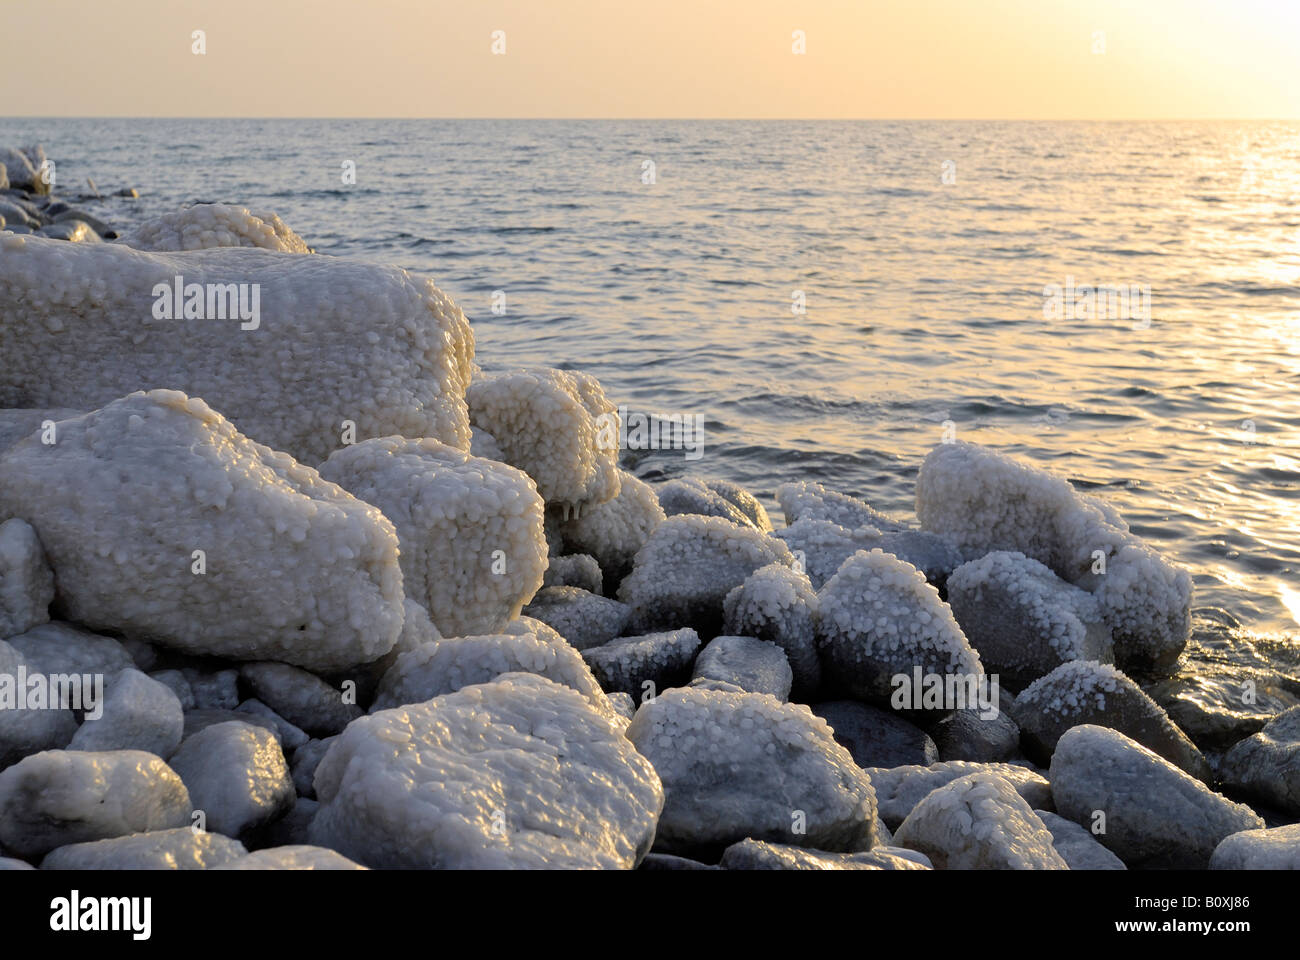 rocks with salt at coastline of Dead Sea Jordan Arabia, lowest place on earth Stock Photo